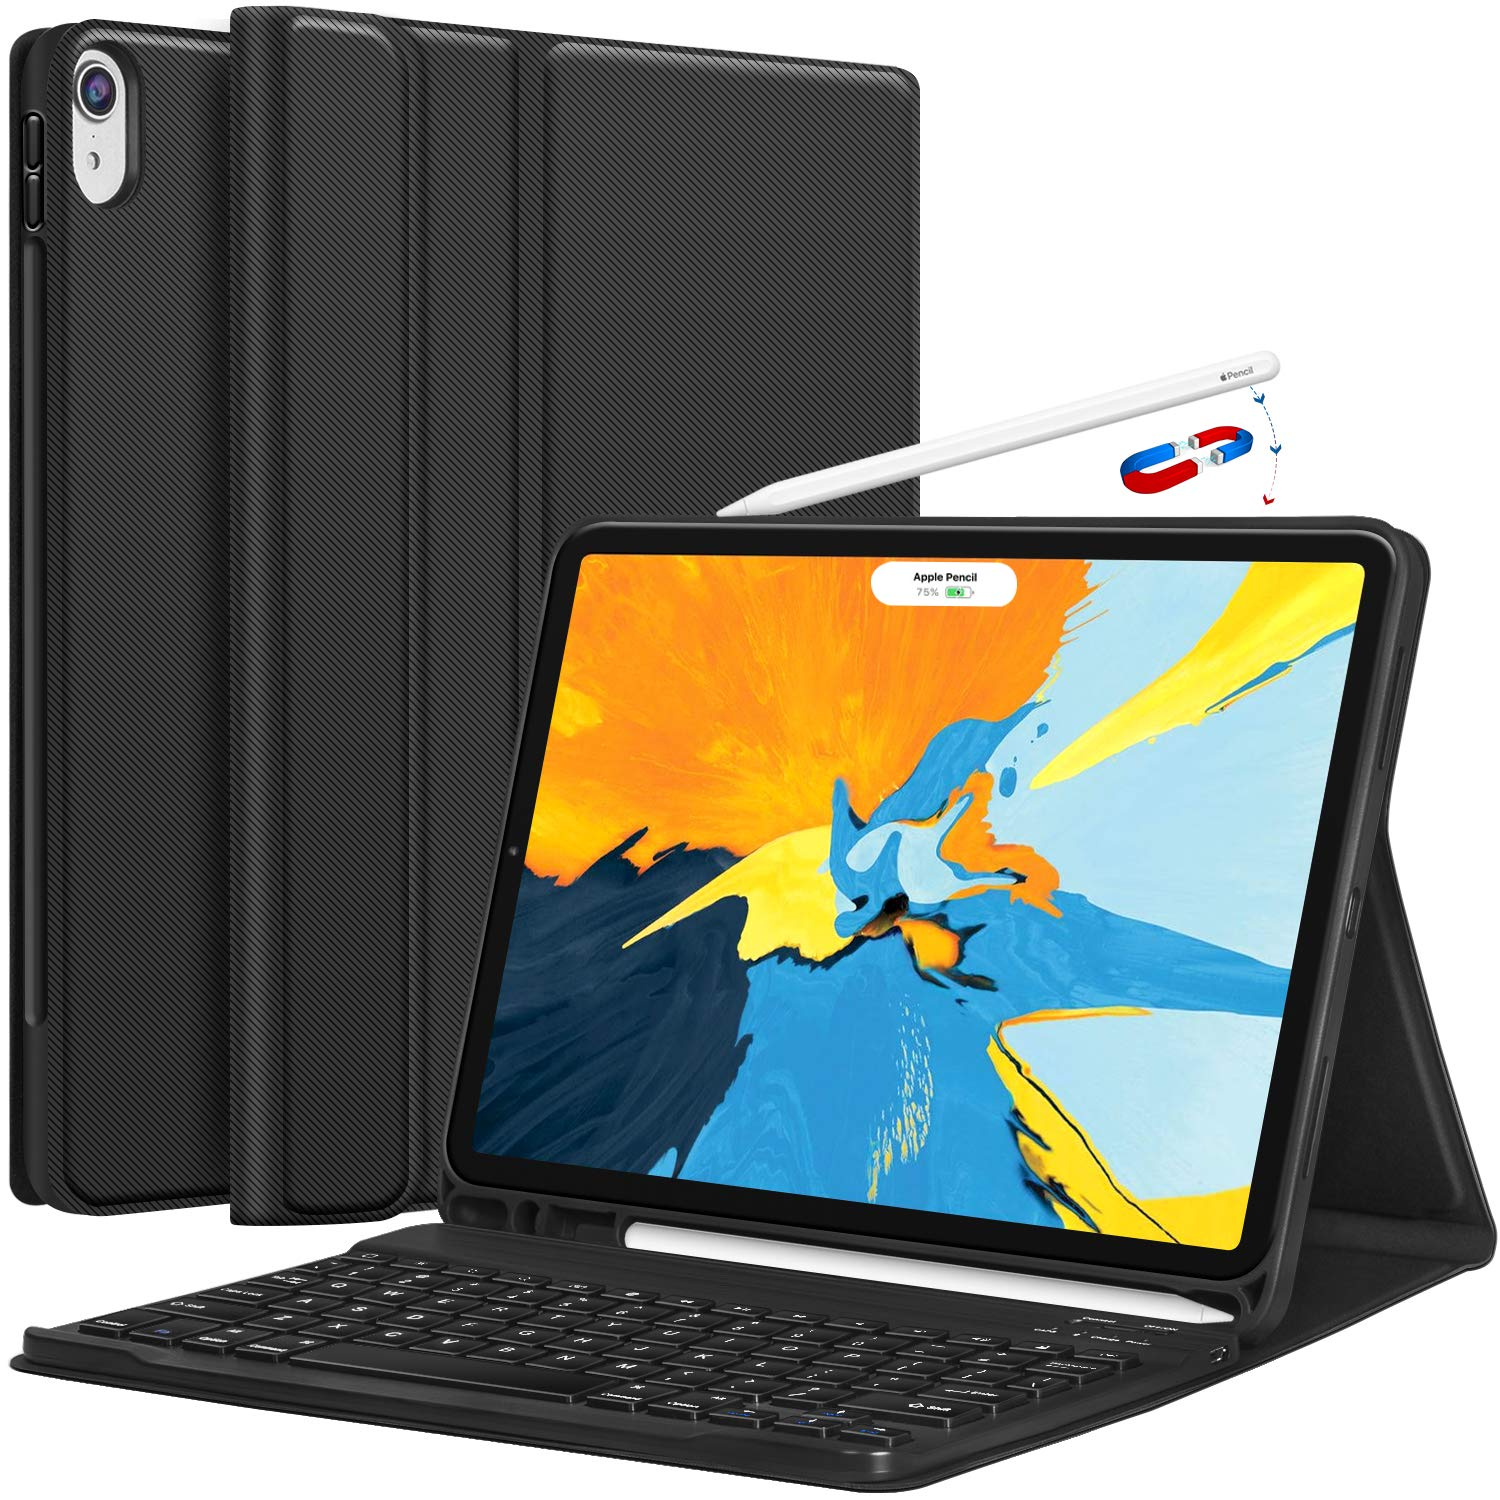 07014a975bd 25 Best iPad Keyboard Cases for Any iPads in 2019